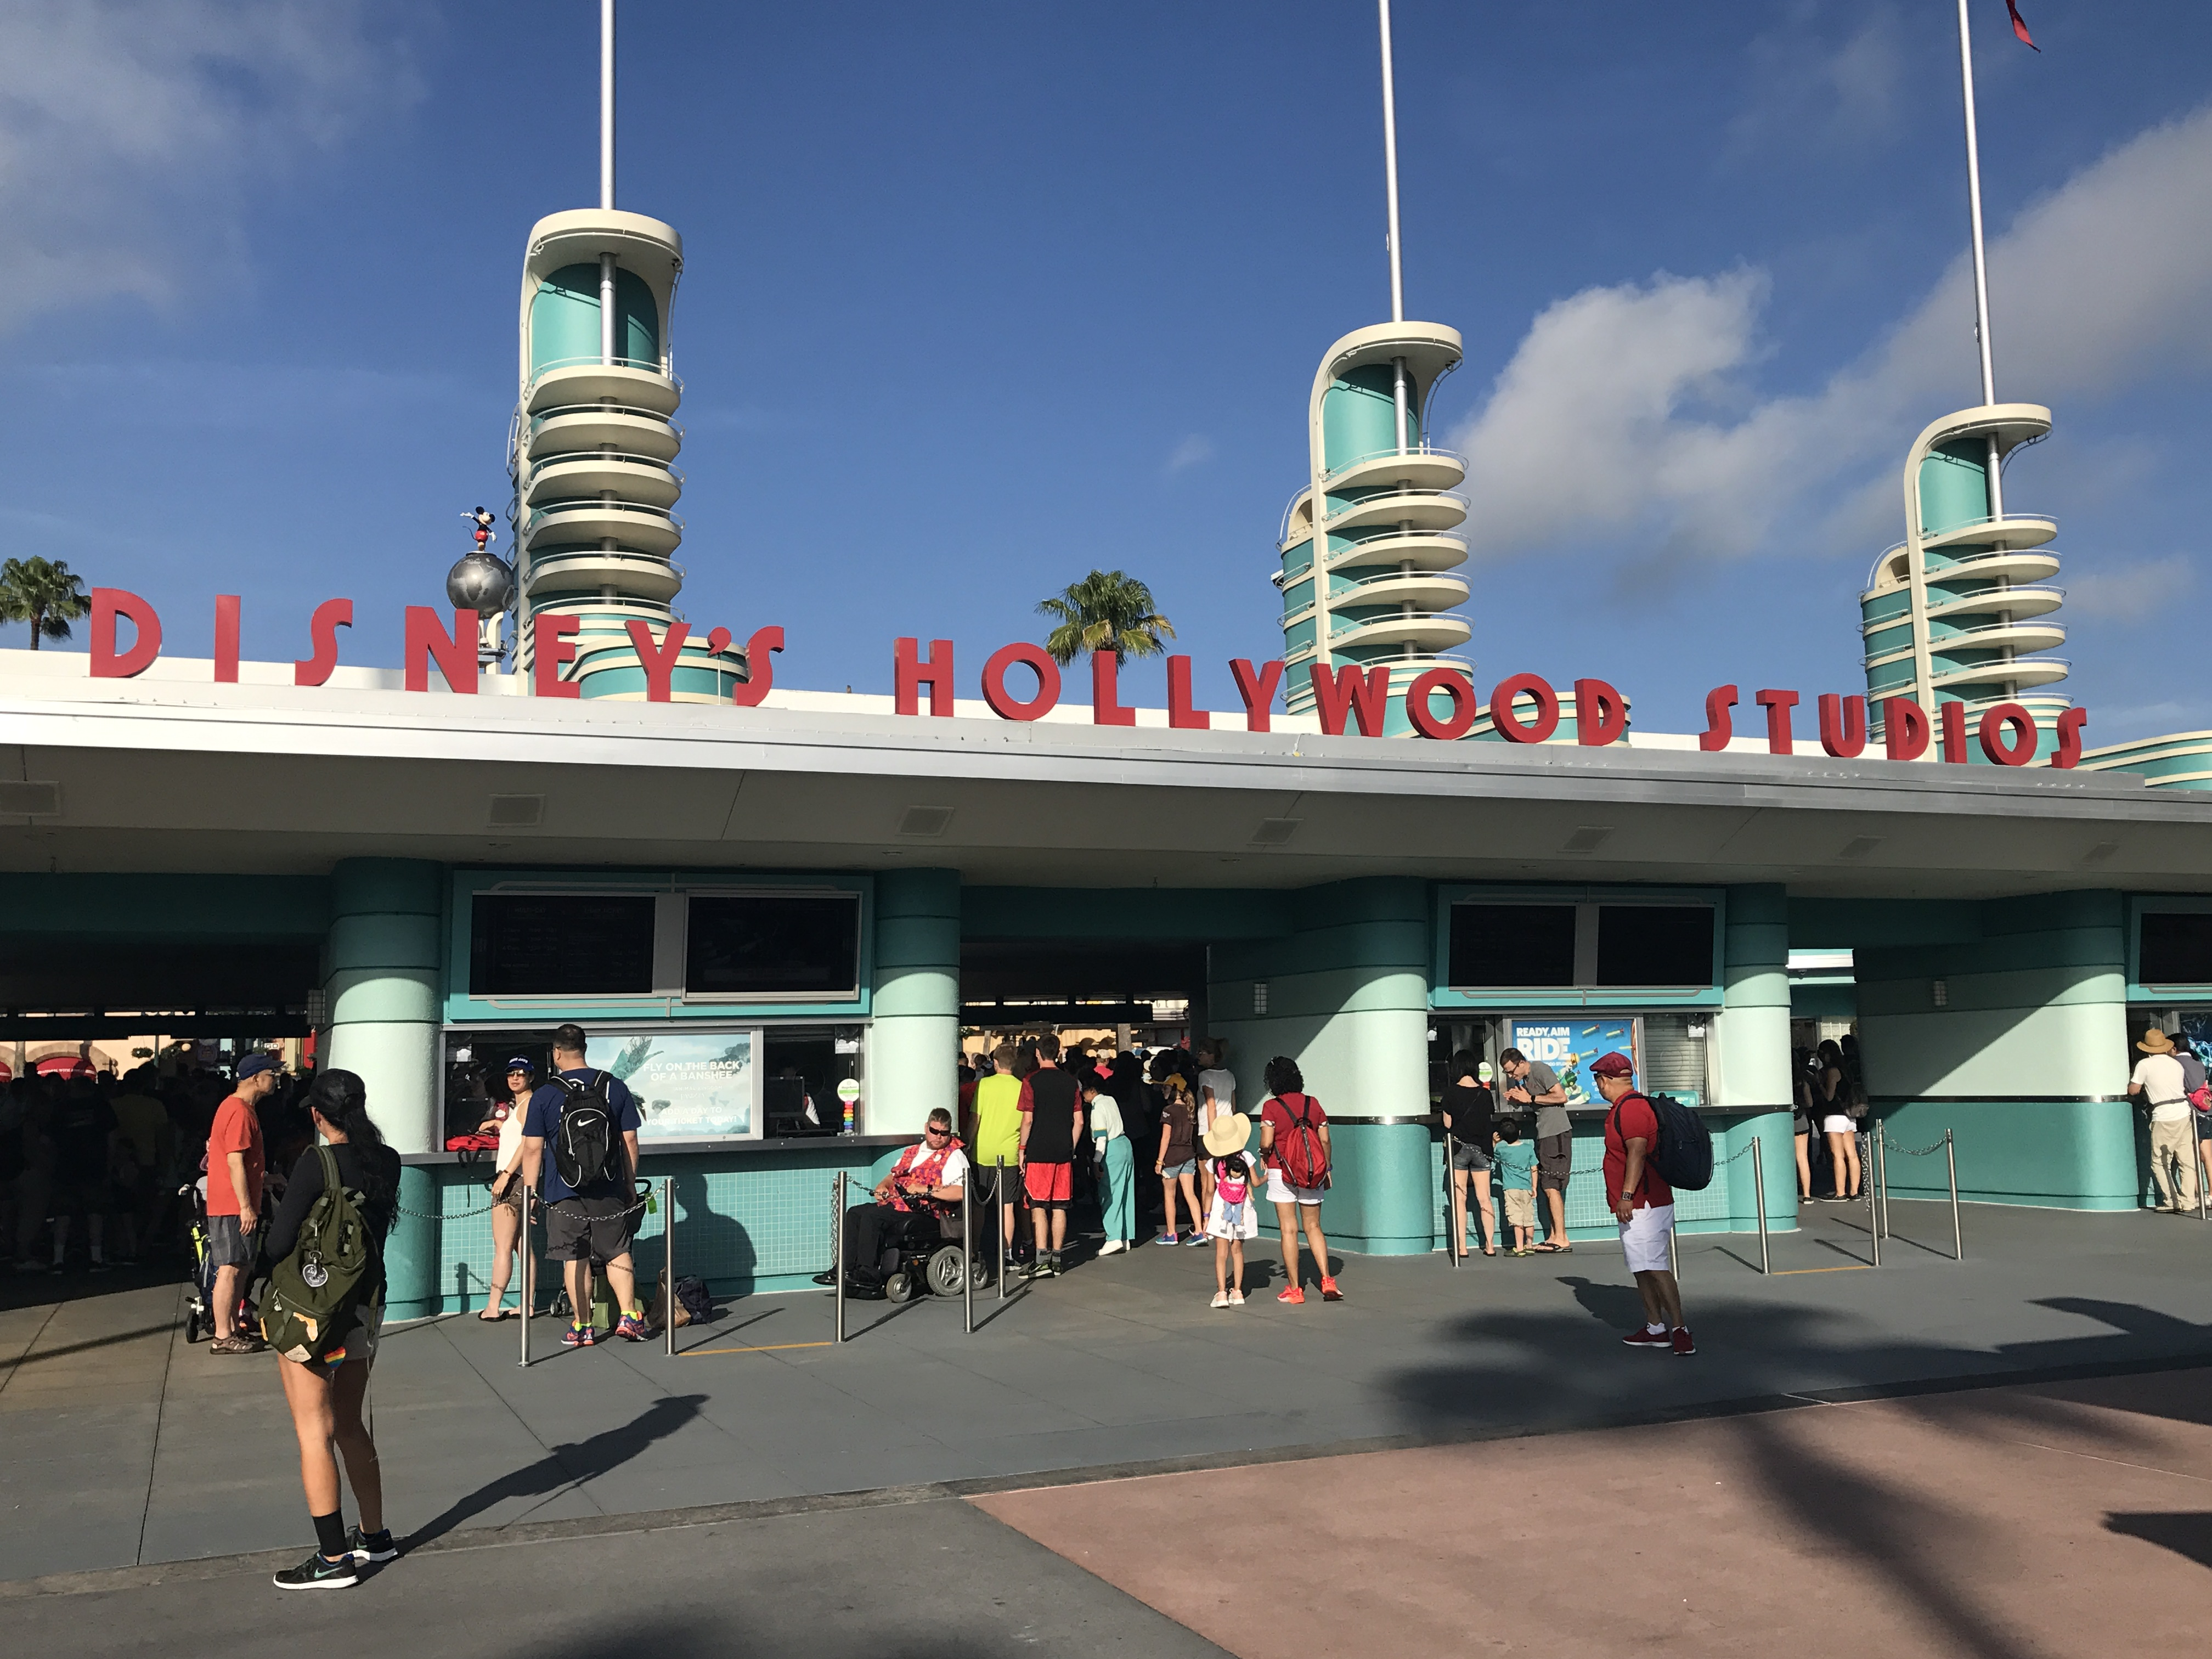 The Top Table Service Restaurants At Hollywood Studios - Best disney table service restaurants